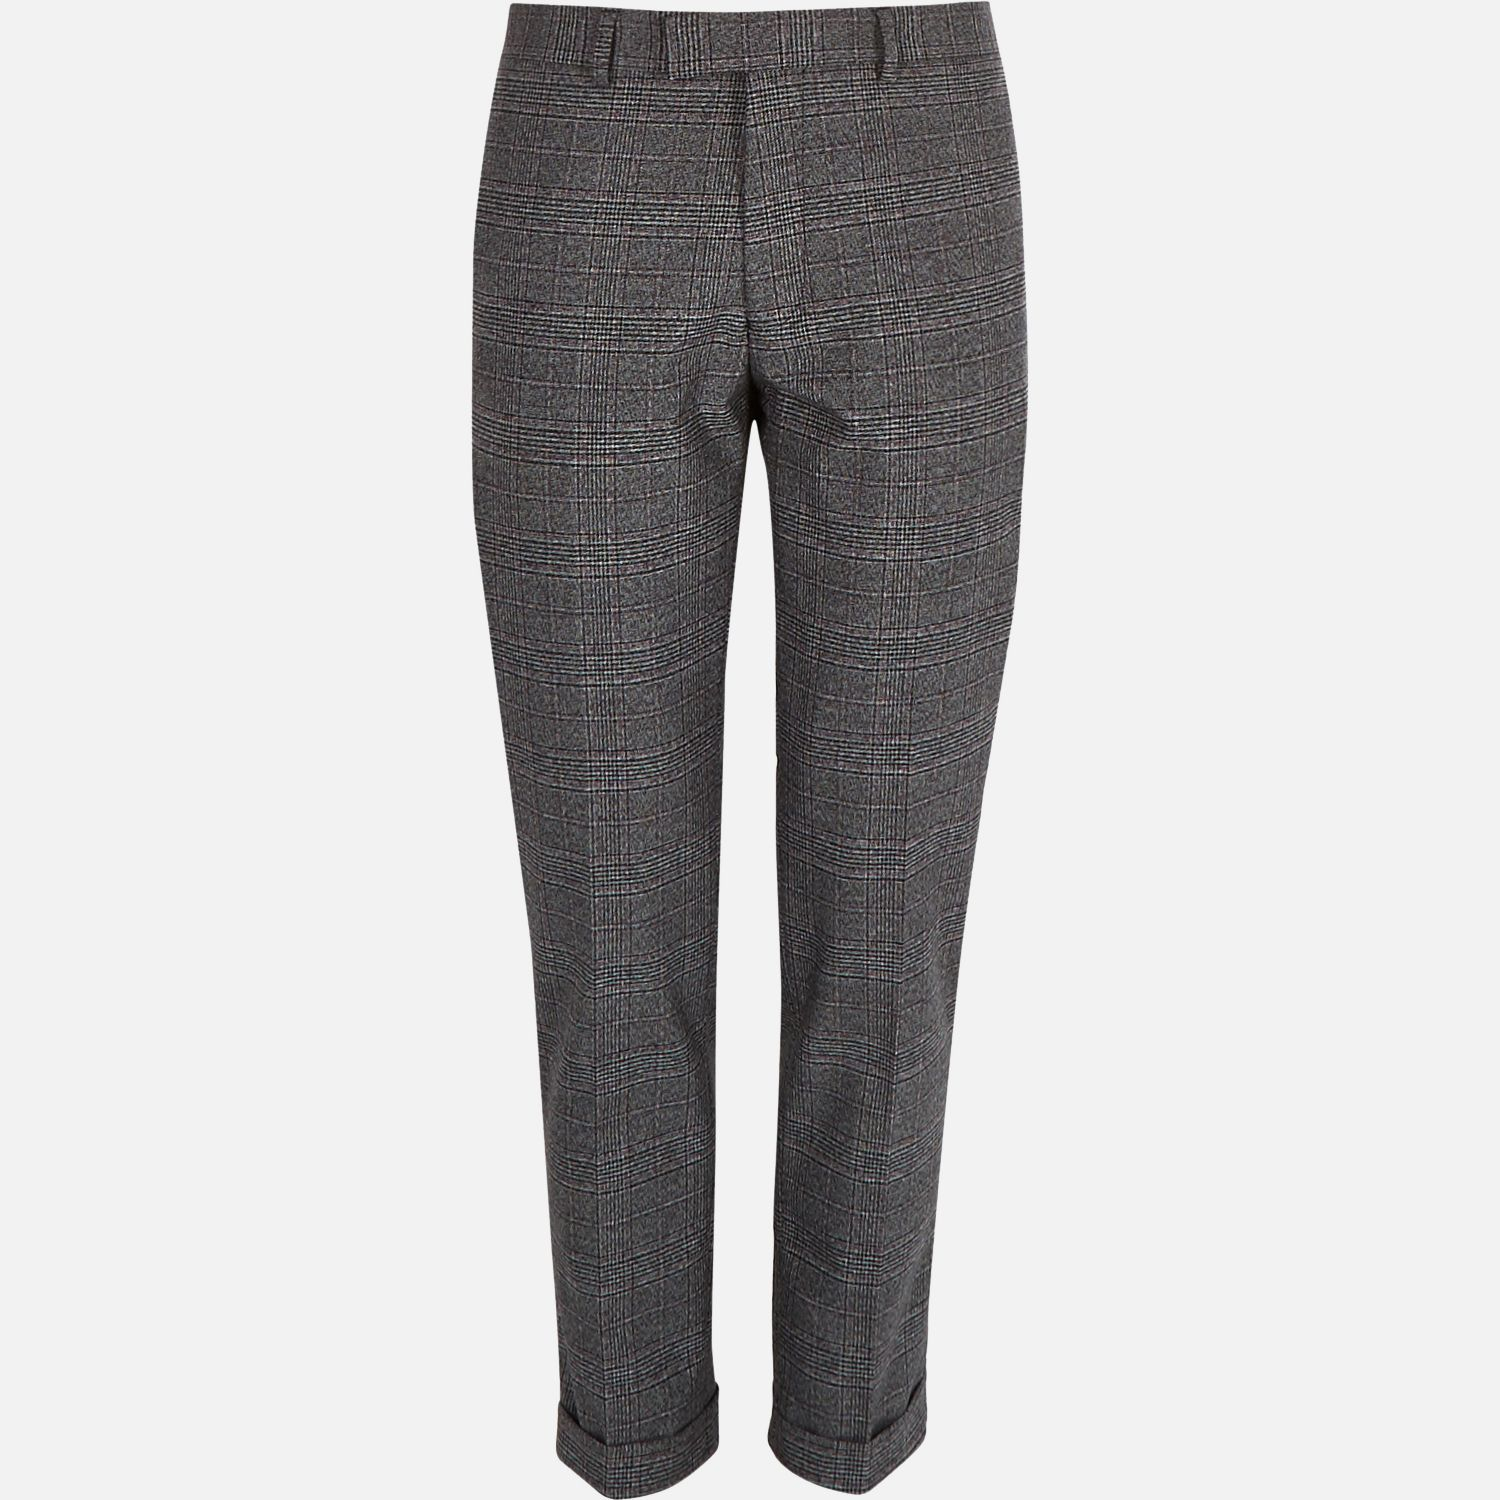 aab652e729d River Island Grey Check Slim Fit Cropped Trousers in Gray for Men - Lyst